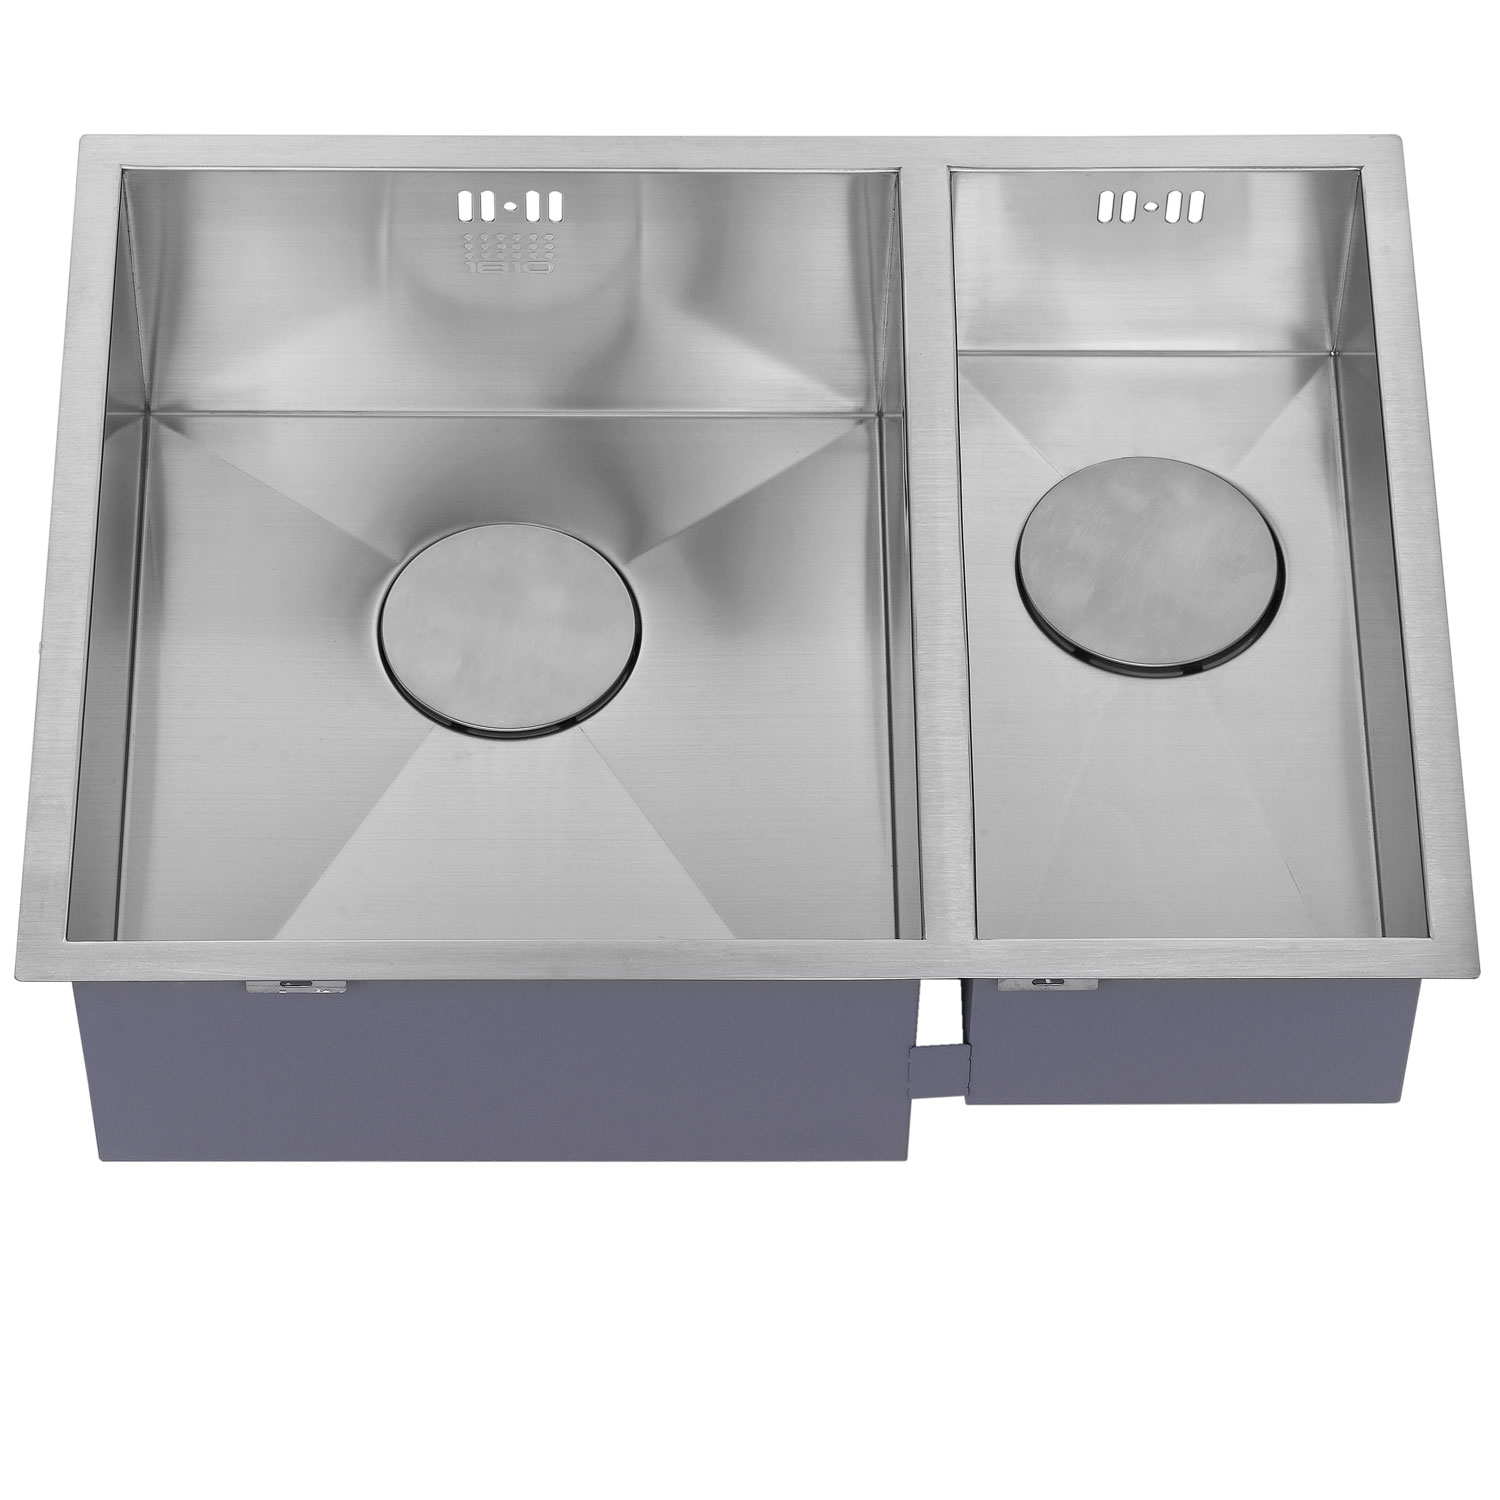 The 1810 Company Zenduo 340/180U 1.5 Bowl Kitchen Sink - Left Handed